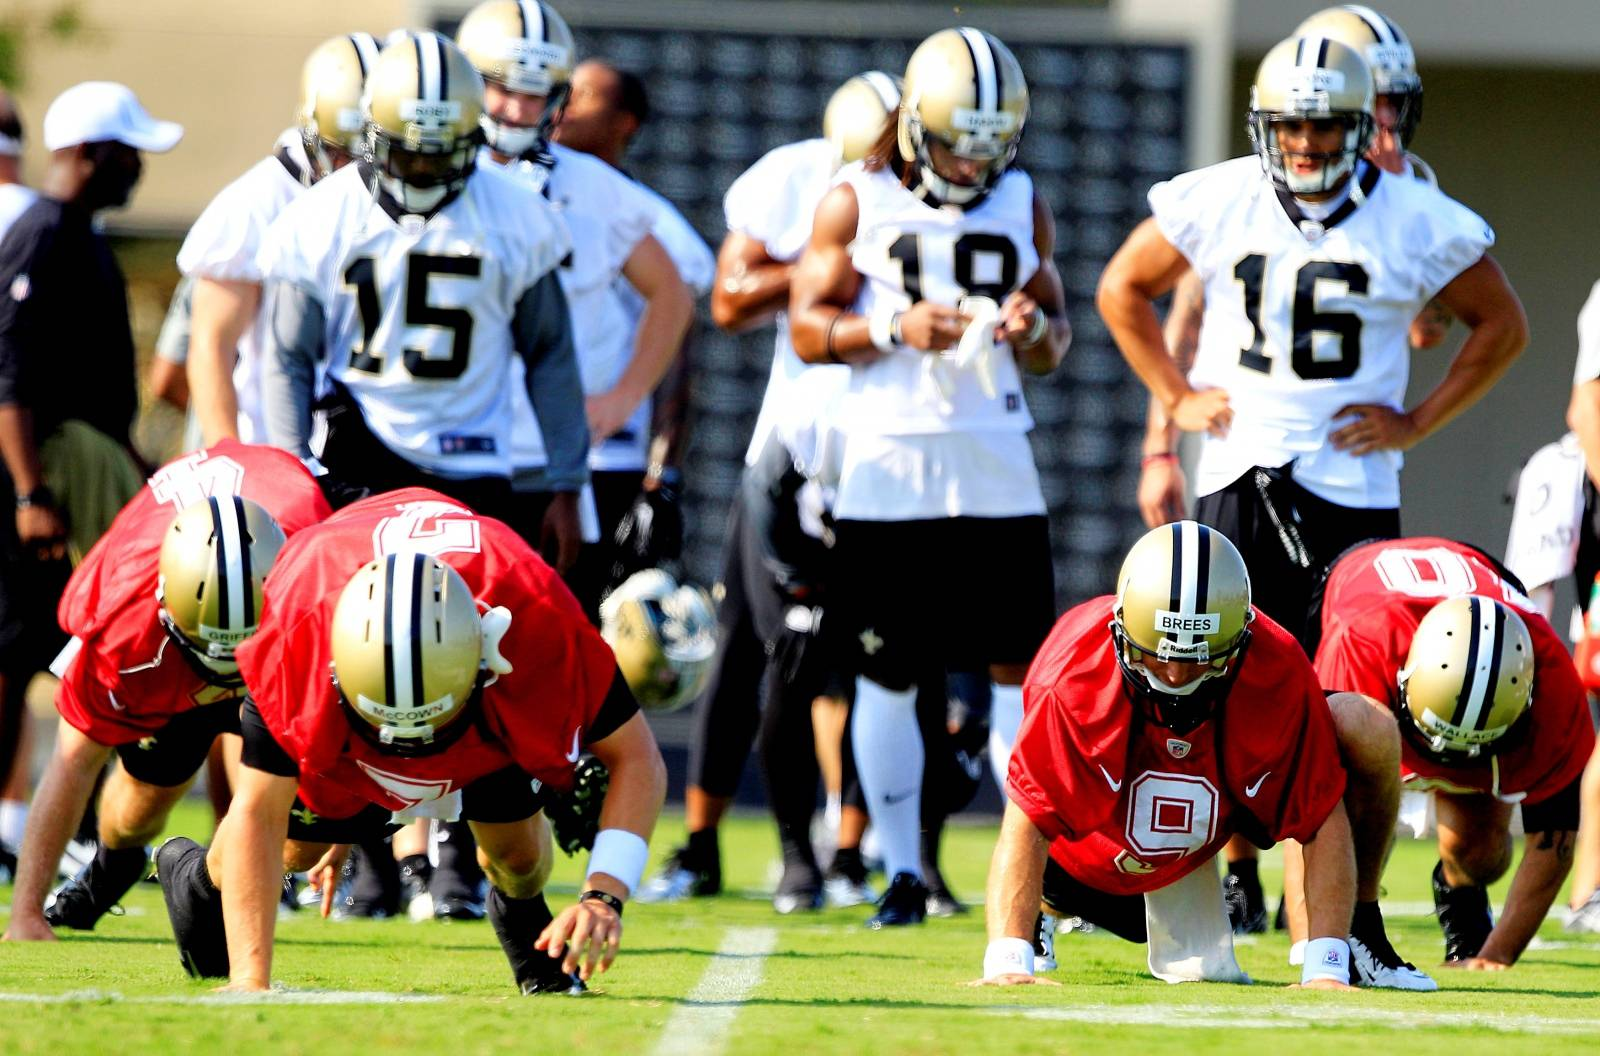 FILE PHOTO: New Orleans Saints players work out during a NFL training camp in Metairie